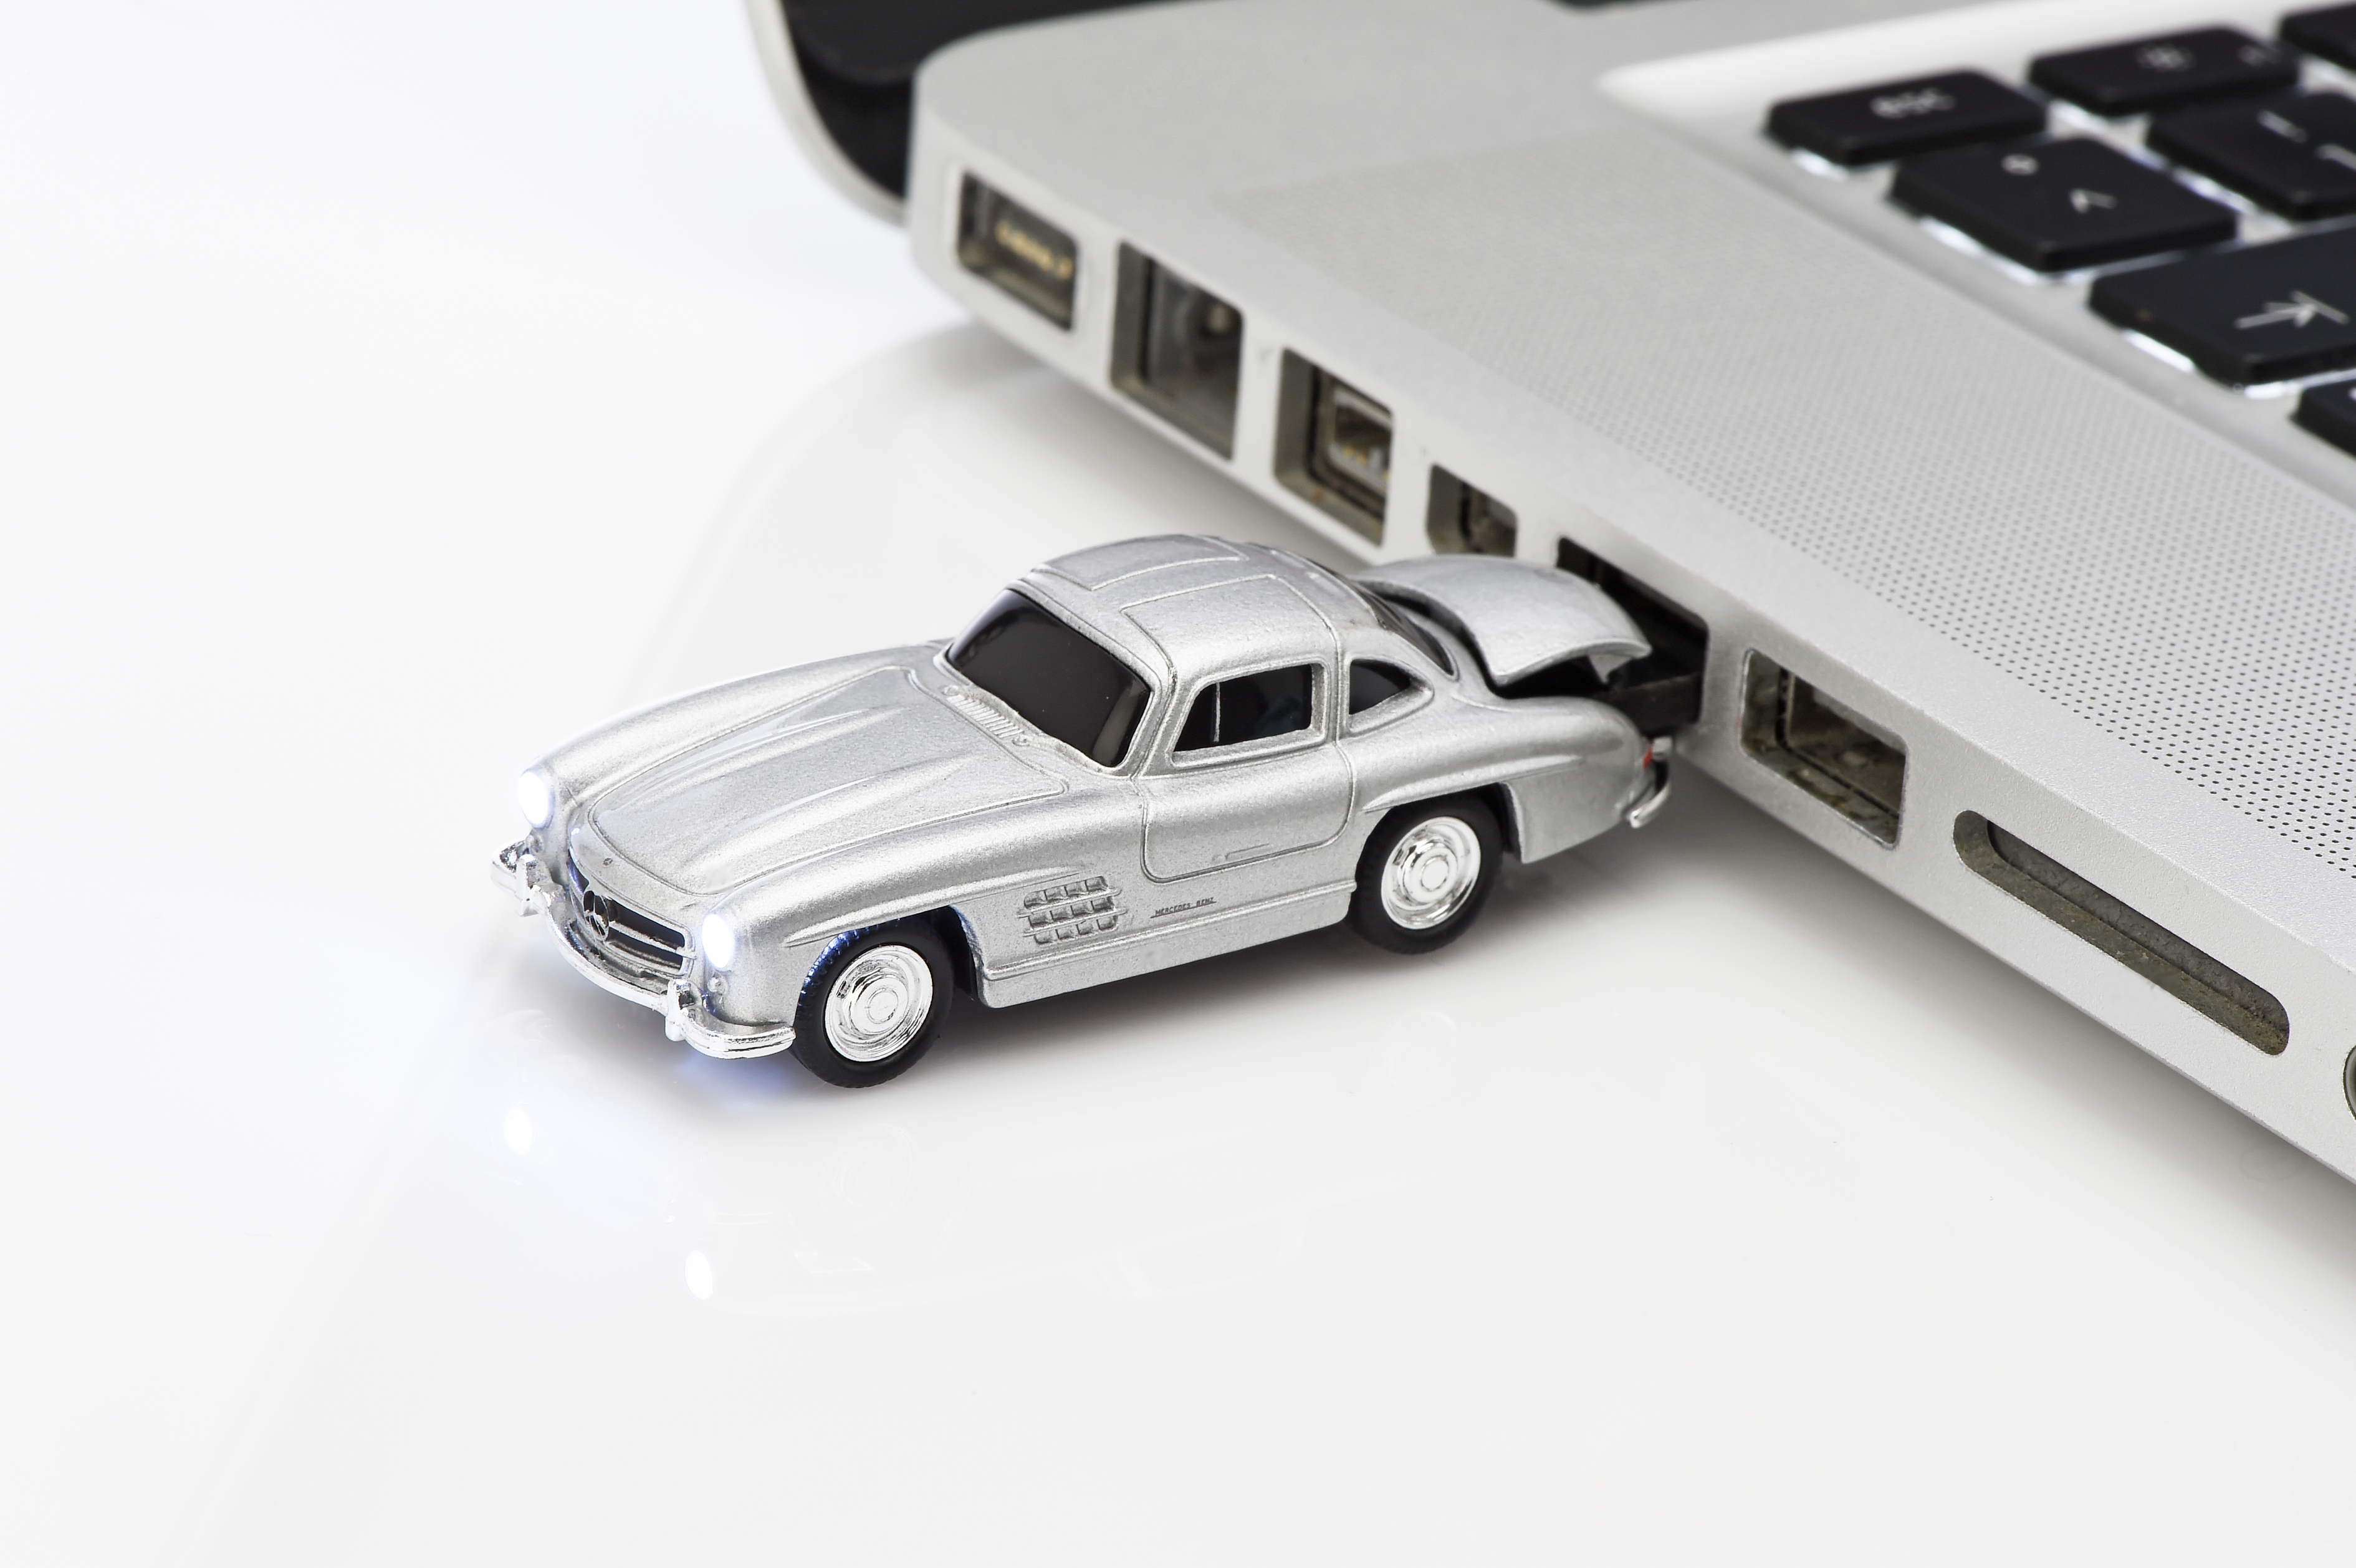 mercedes benz usb stick jetzt online bestellen mercedes. Black Bedroom Furniture Sets. Home Design Ideas